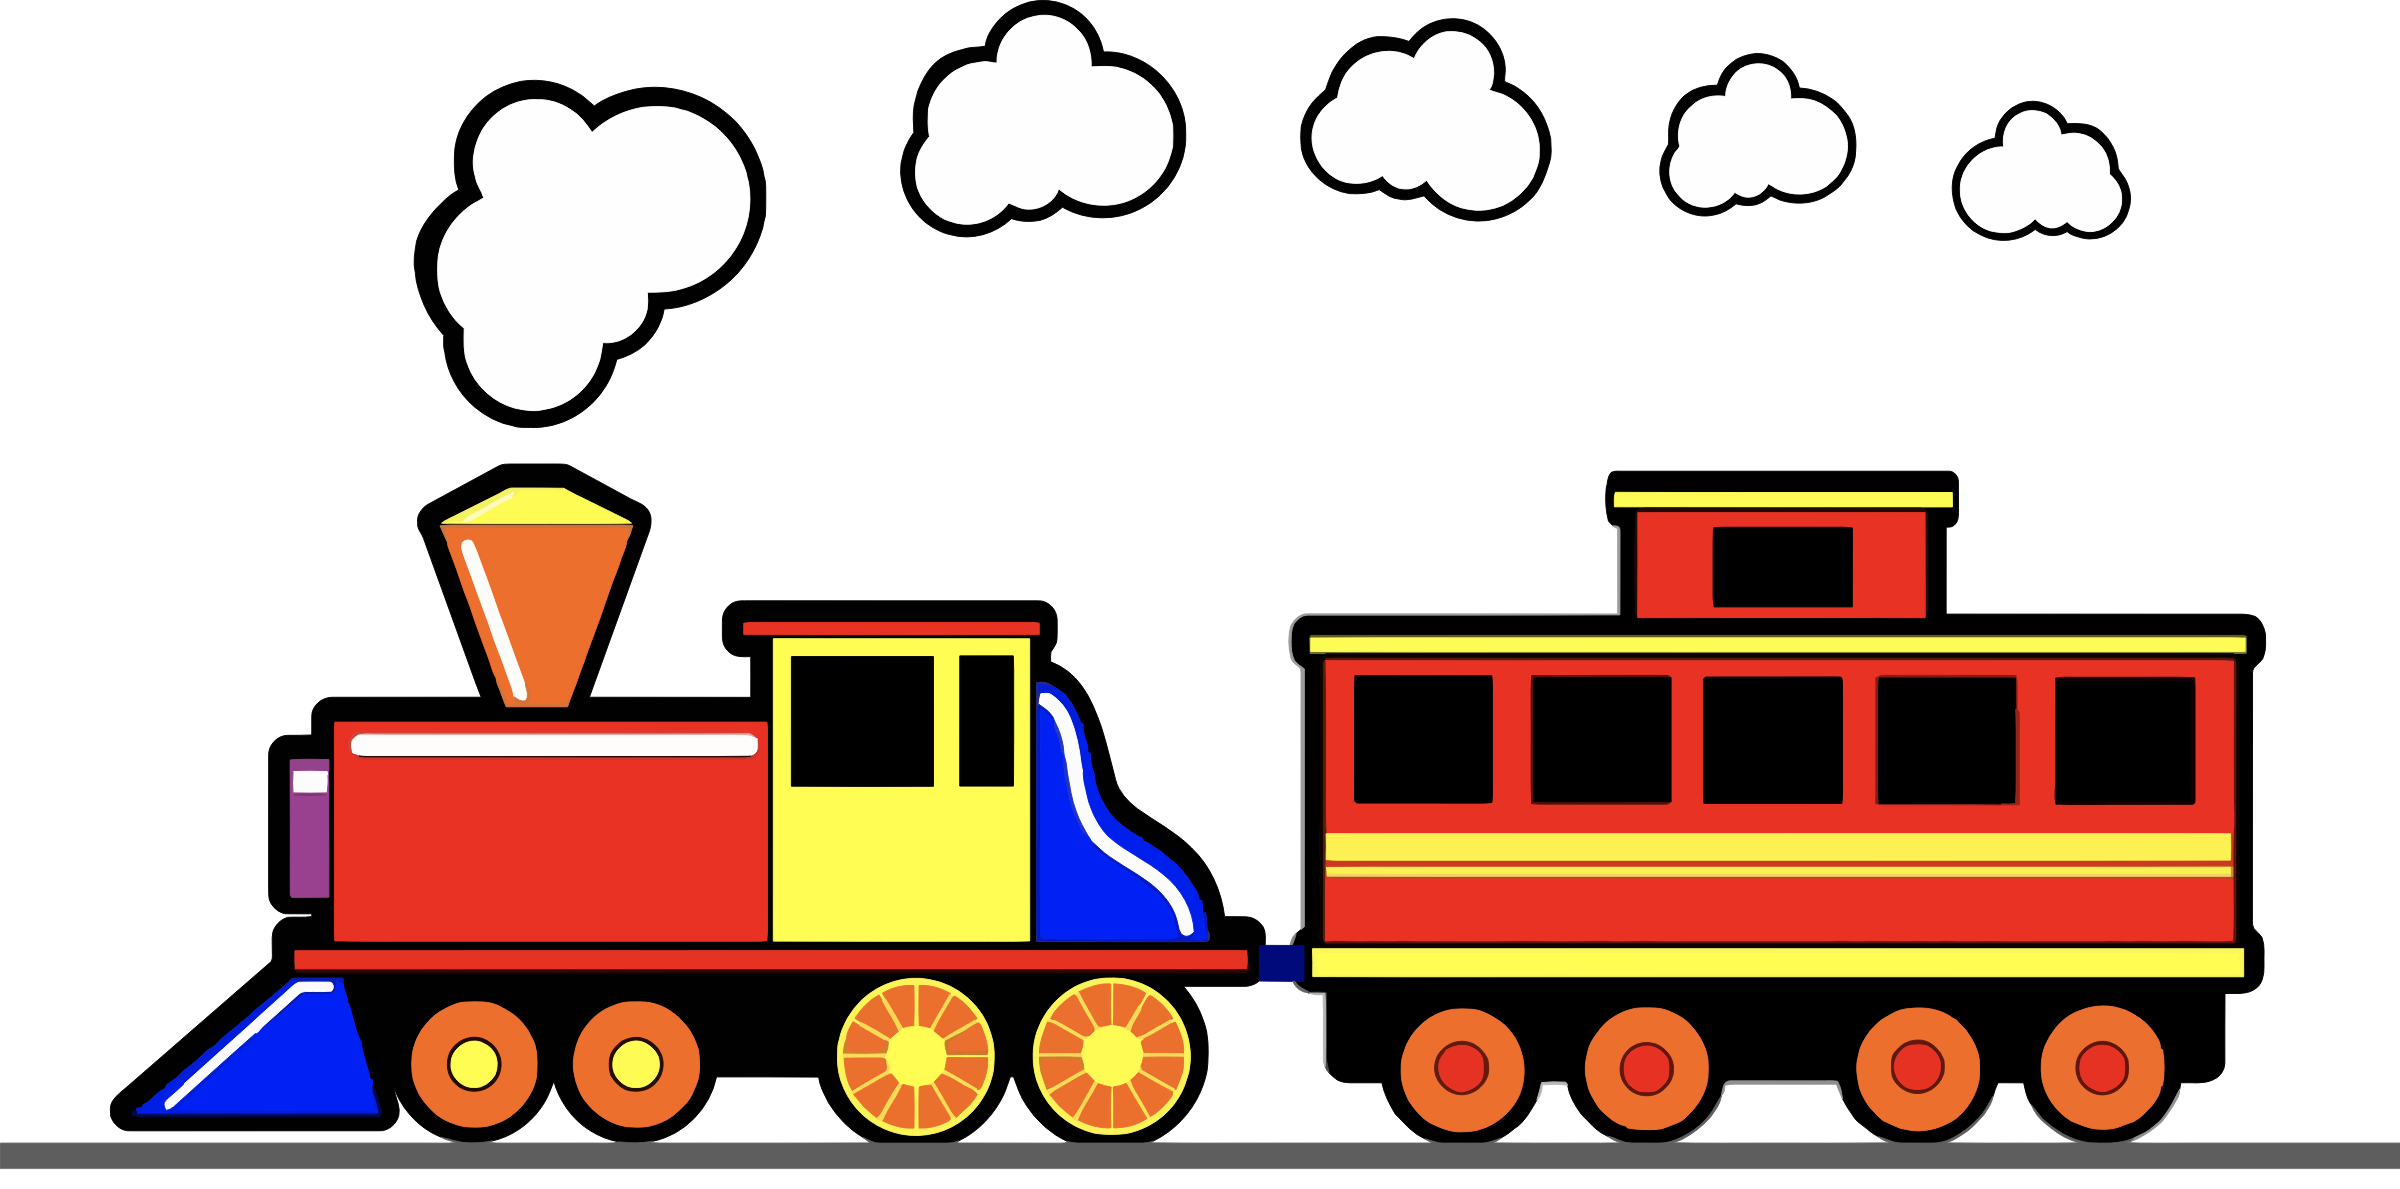 clip art transparent stock Clouds clipart train. Toy icons png free.